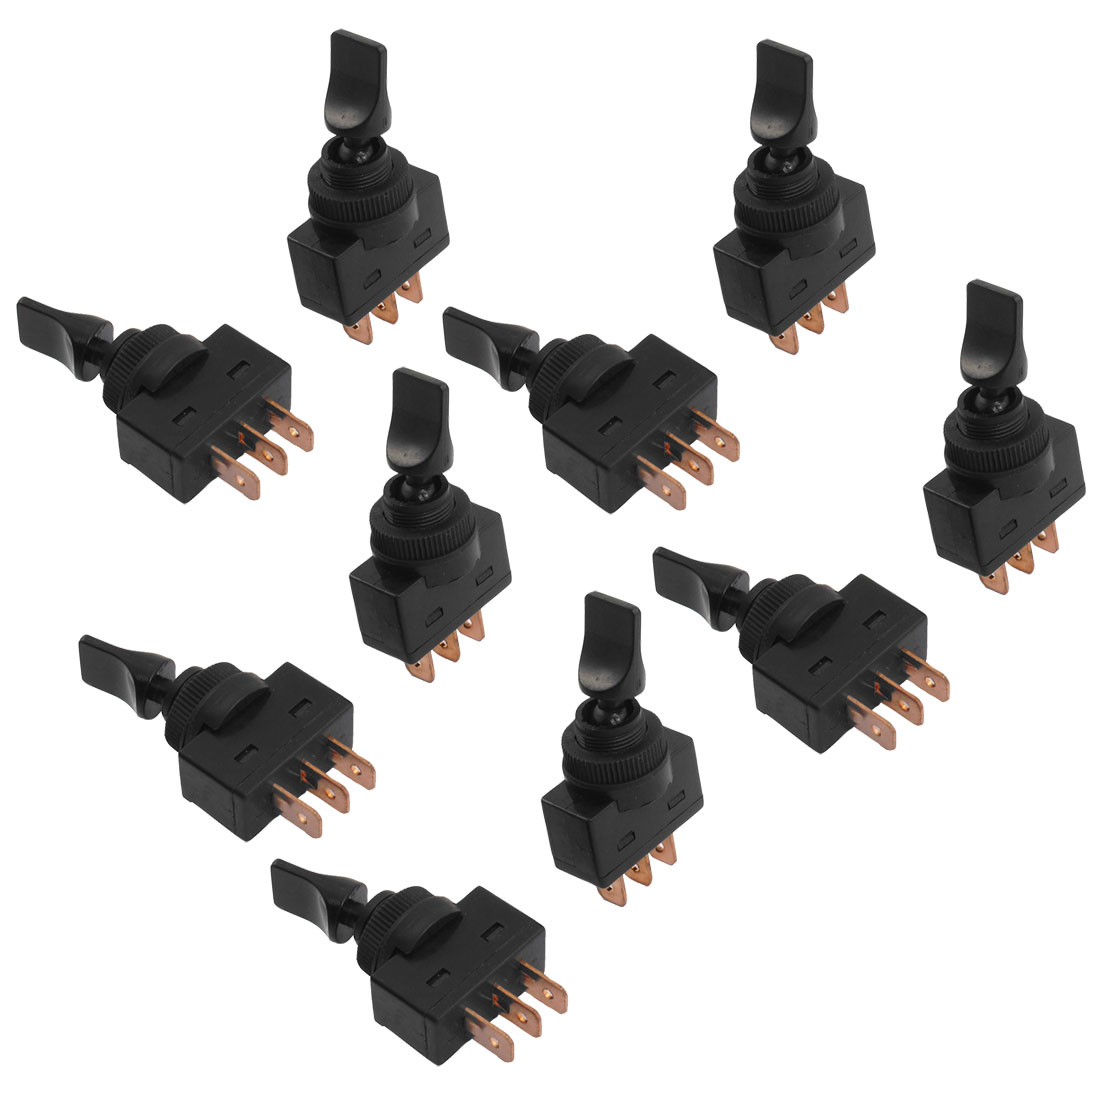 Unique Bargains 10 Pcs 12VDC 20A SPST ON/ON 12mm Mounting Thread Dia. Black Toggle Switch